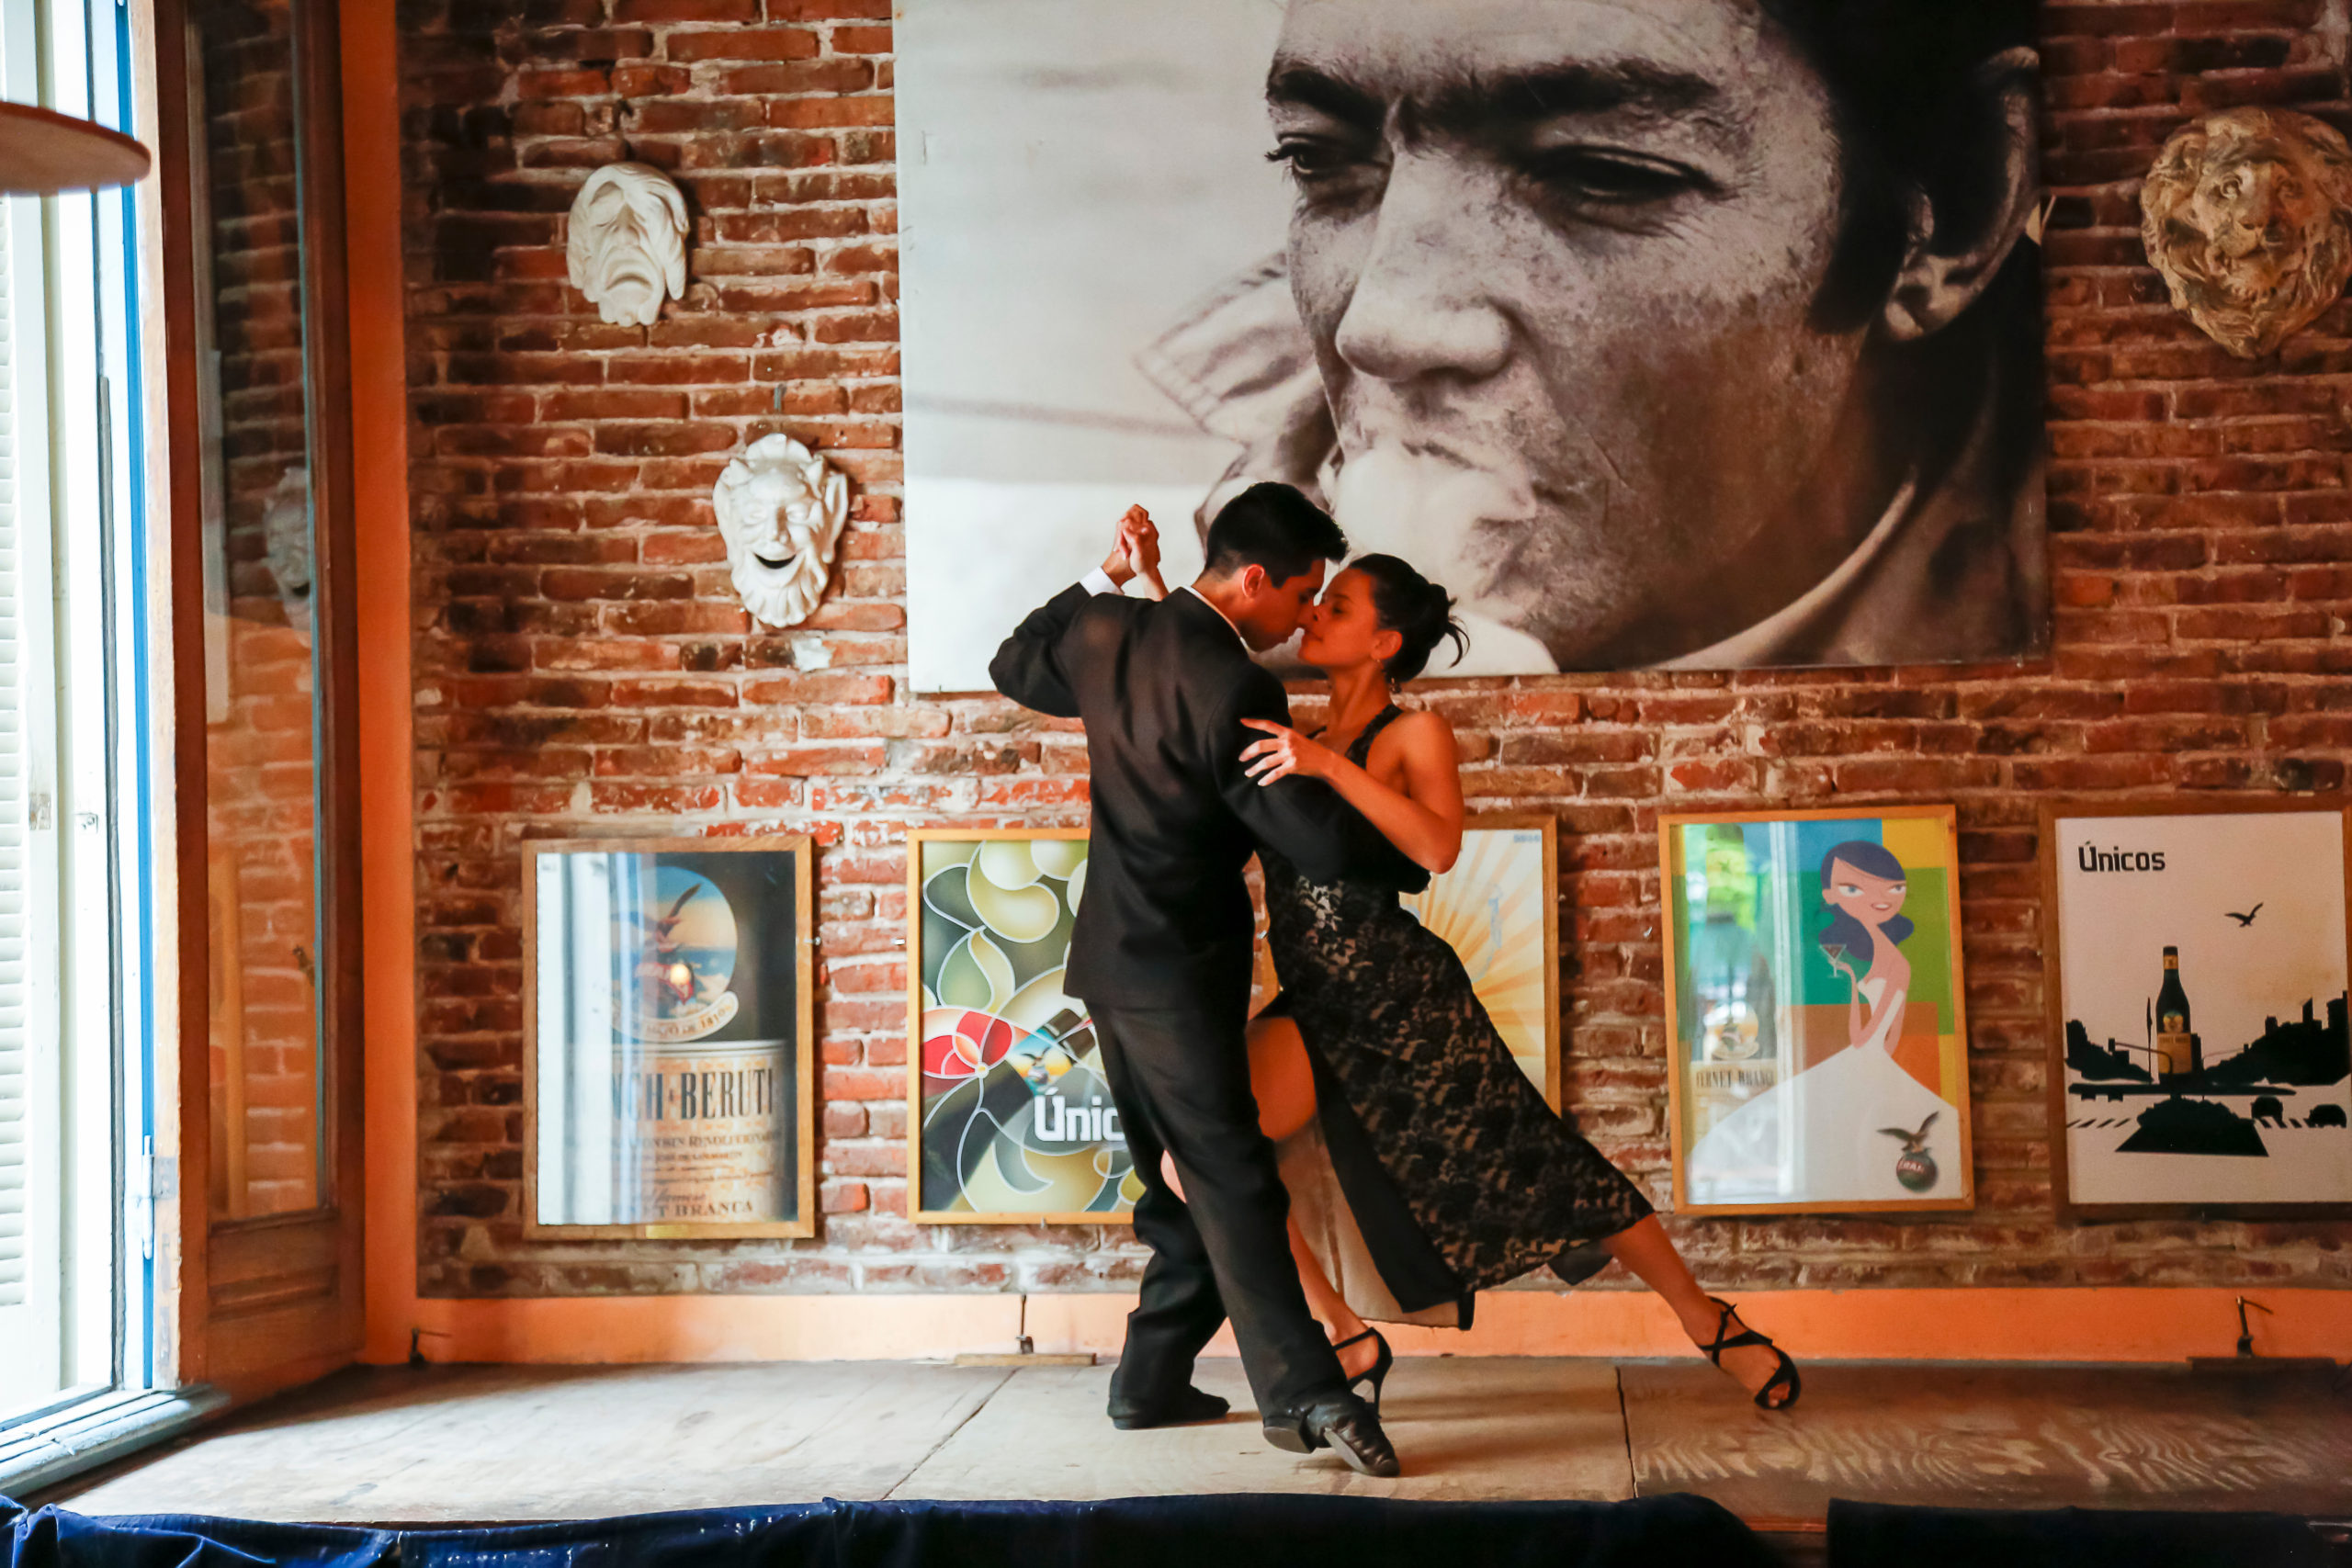 Tango lessons are budget-friendly at $20 an hour